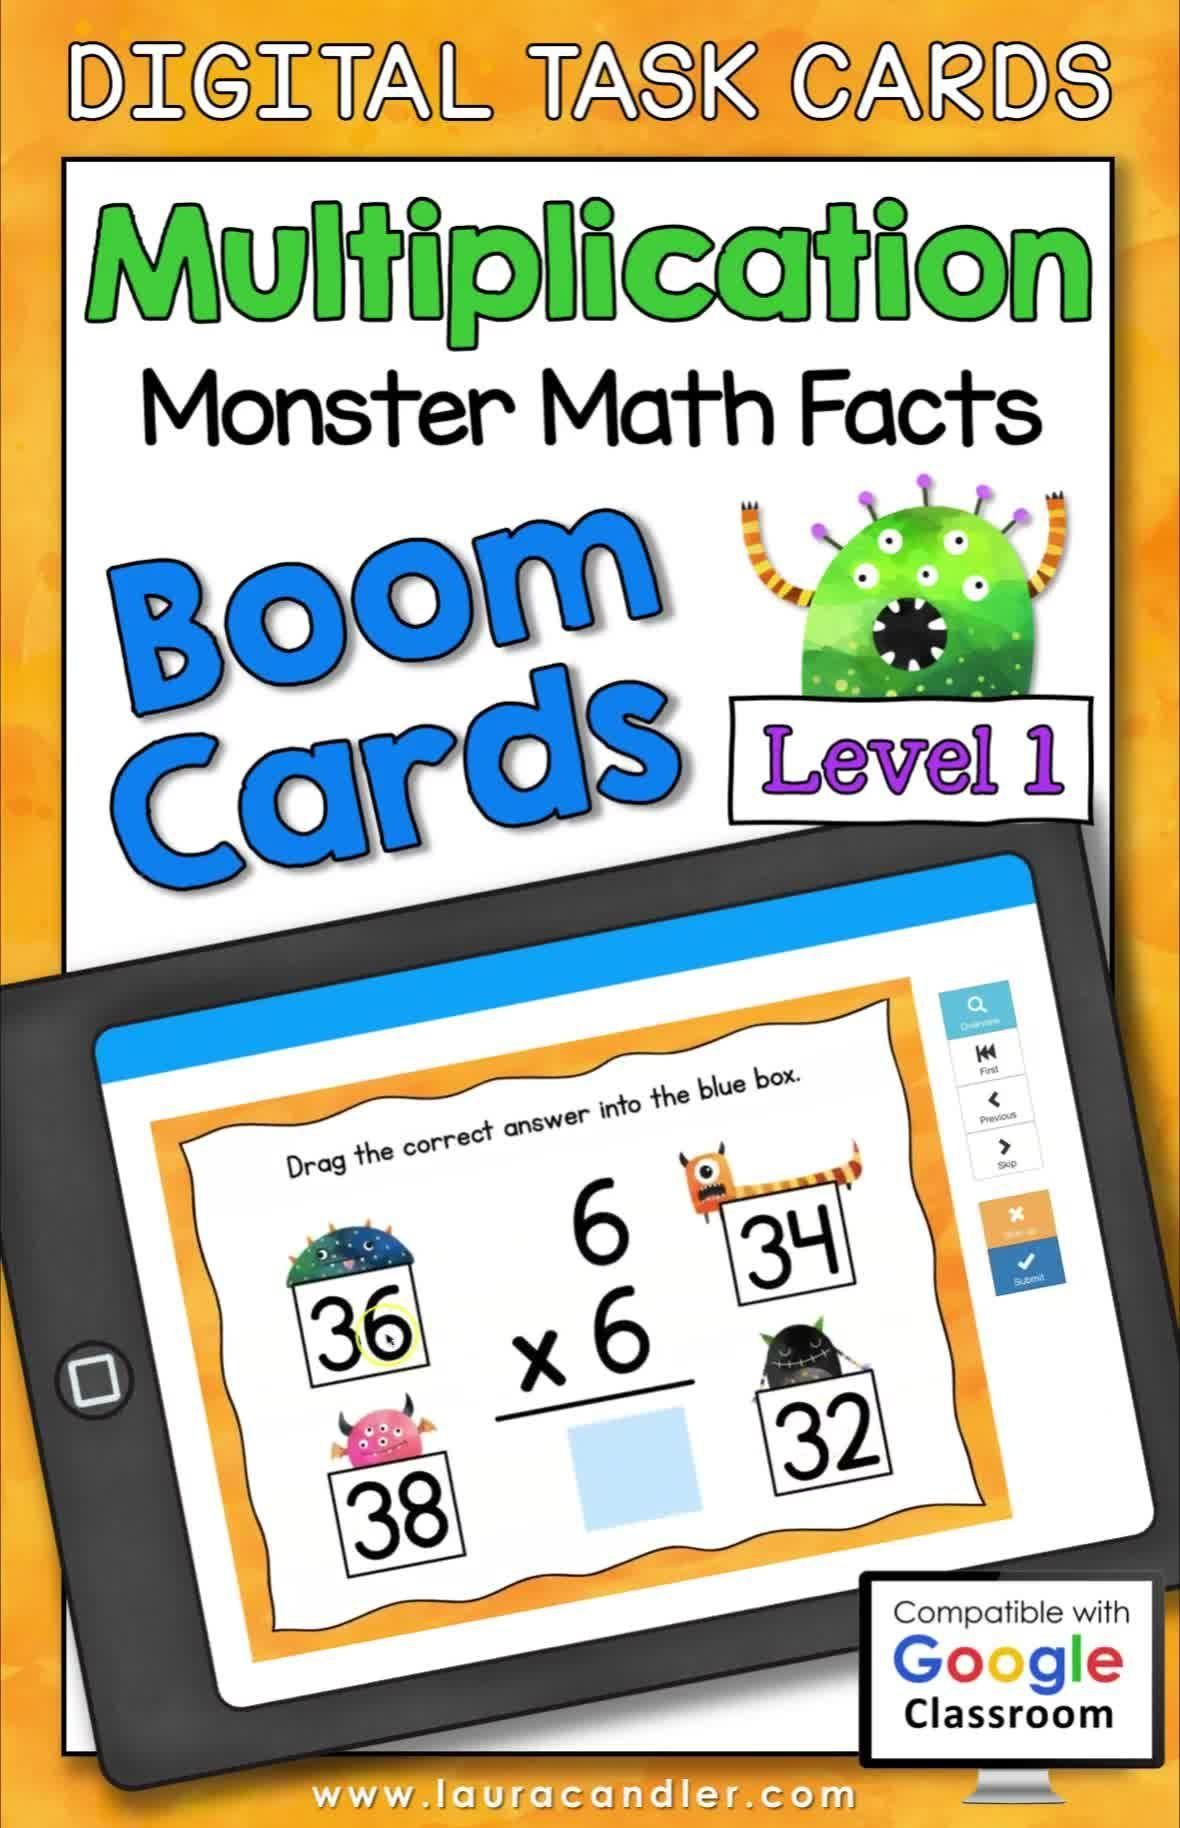 Multiplication Math Facts Level 1 Boom Cards - Digital Task Cards [Video]  [Video] In 2020 | Math Facts, Digital Task Cards, Task Cards